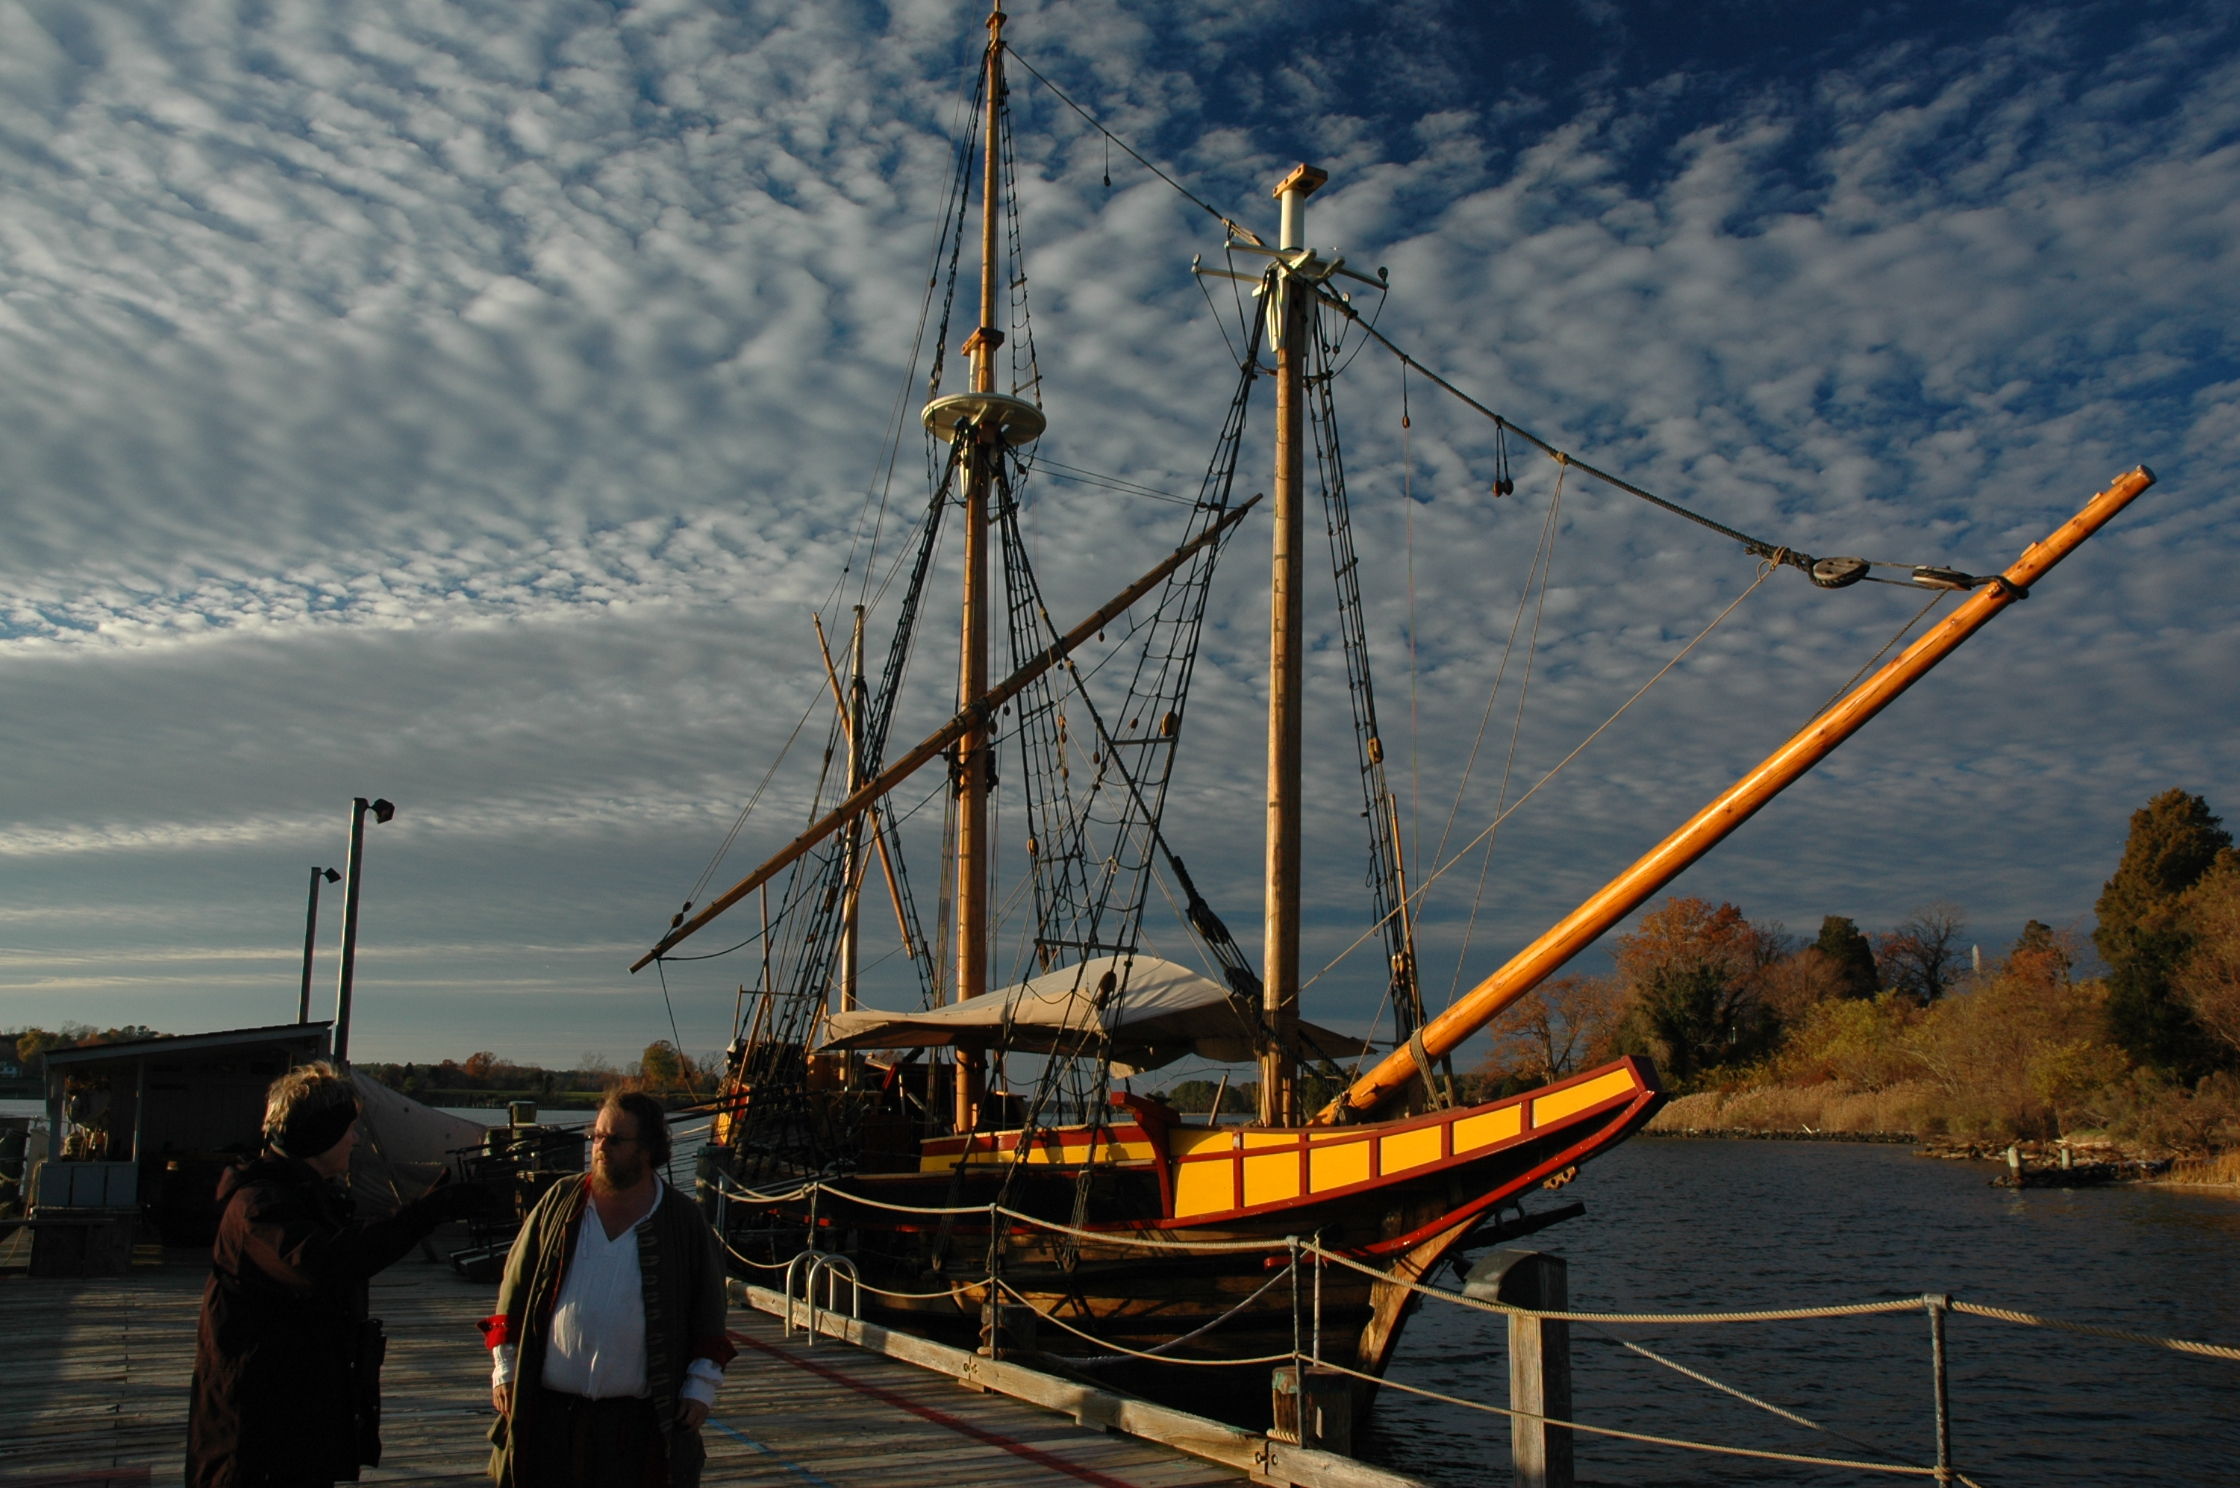 The Maryland Dove, replica of a typical 17th c. inter-coastal trading vessel. Historic St. Mary's City. Photo: Margaret Yocom, 2013.